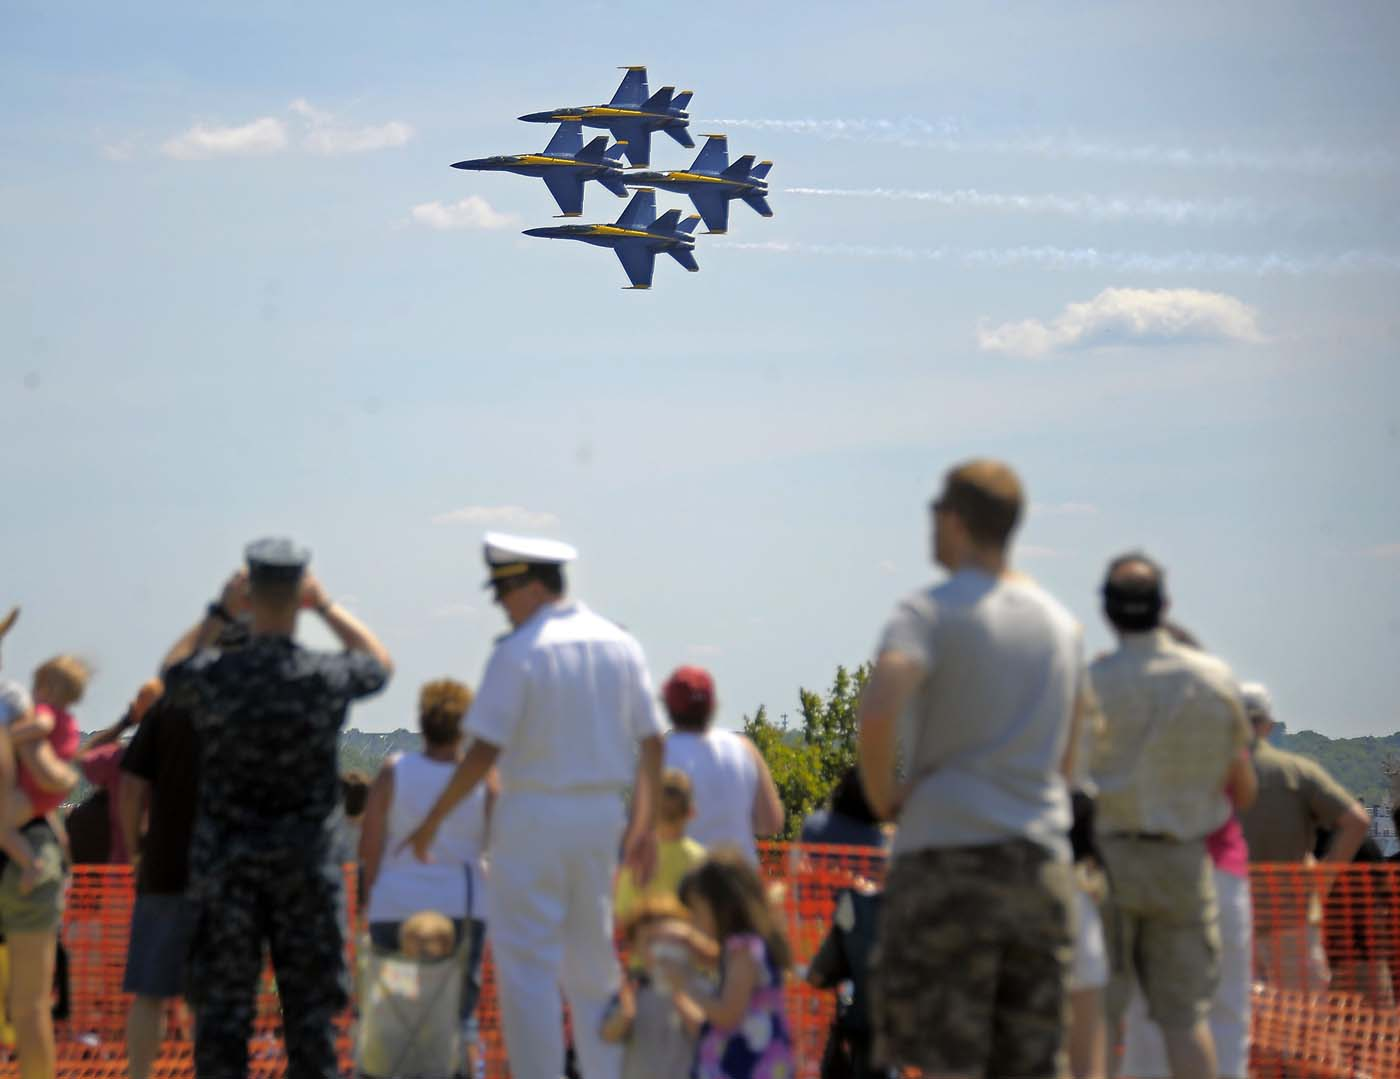 Blue Angels soar high during Star-Spangled Sailabration